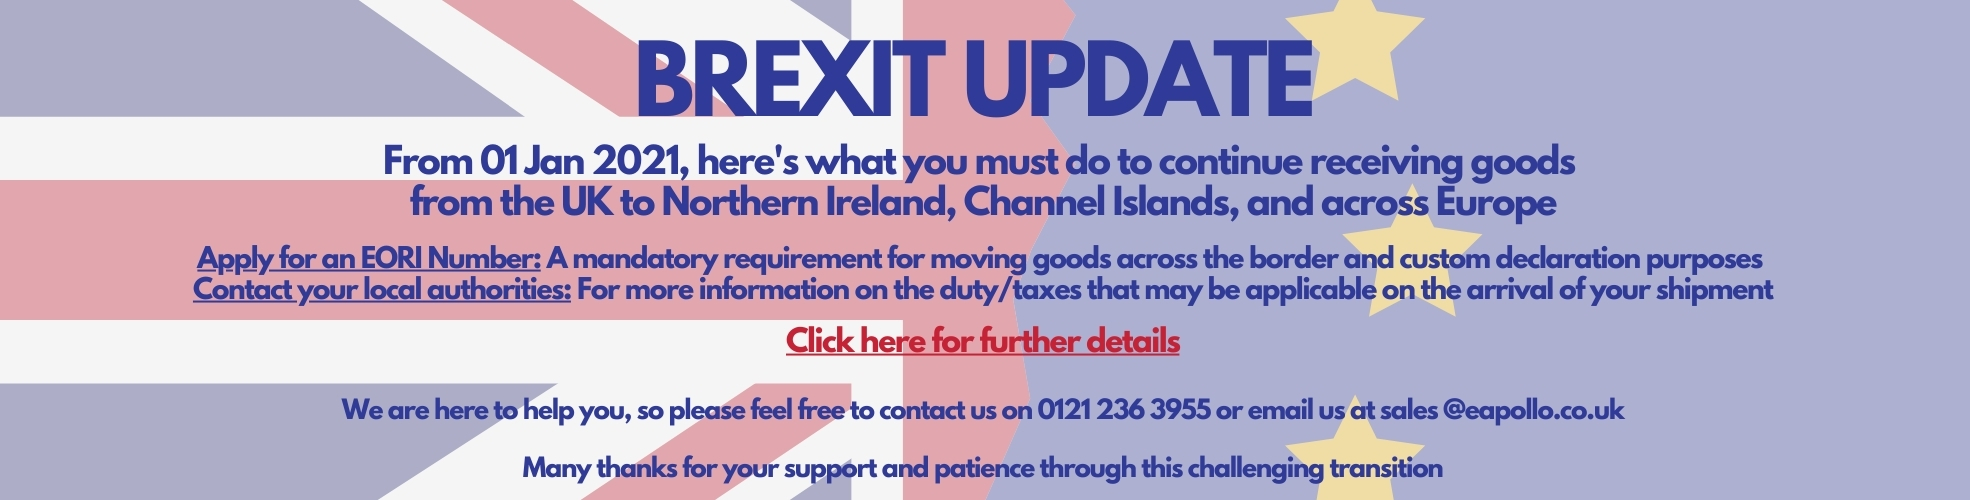 BREXIT UPDATE From 01 Jan 2021, here's what you must do to continue receiving goods from the UK to Northern Ireland, Channel Islands, and across Europe Apply for an EORI Number: A mandatory requirement for moving goods across the border and custom declaration purposes Contact your local authorities: To receive more information on duty/taxes that may be applicable on the arrival of your shipment Click here for further details You can also contact us on 0121 236 3955 or email us at sales @eapollo.co.uk Many thanks for your support and patience through this challenging transition.